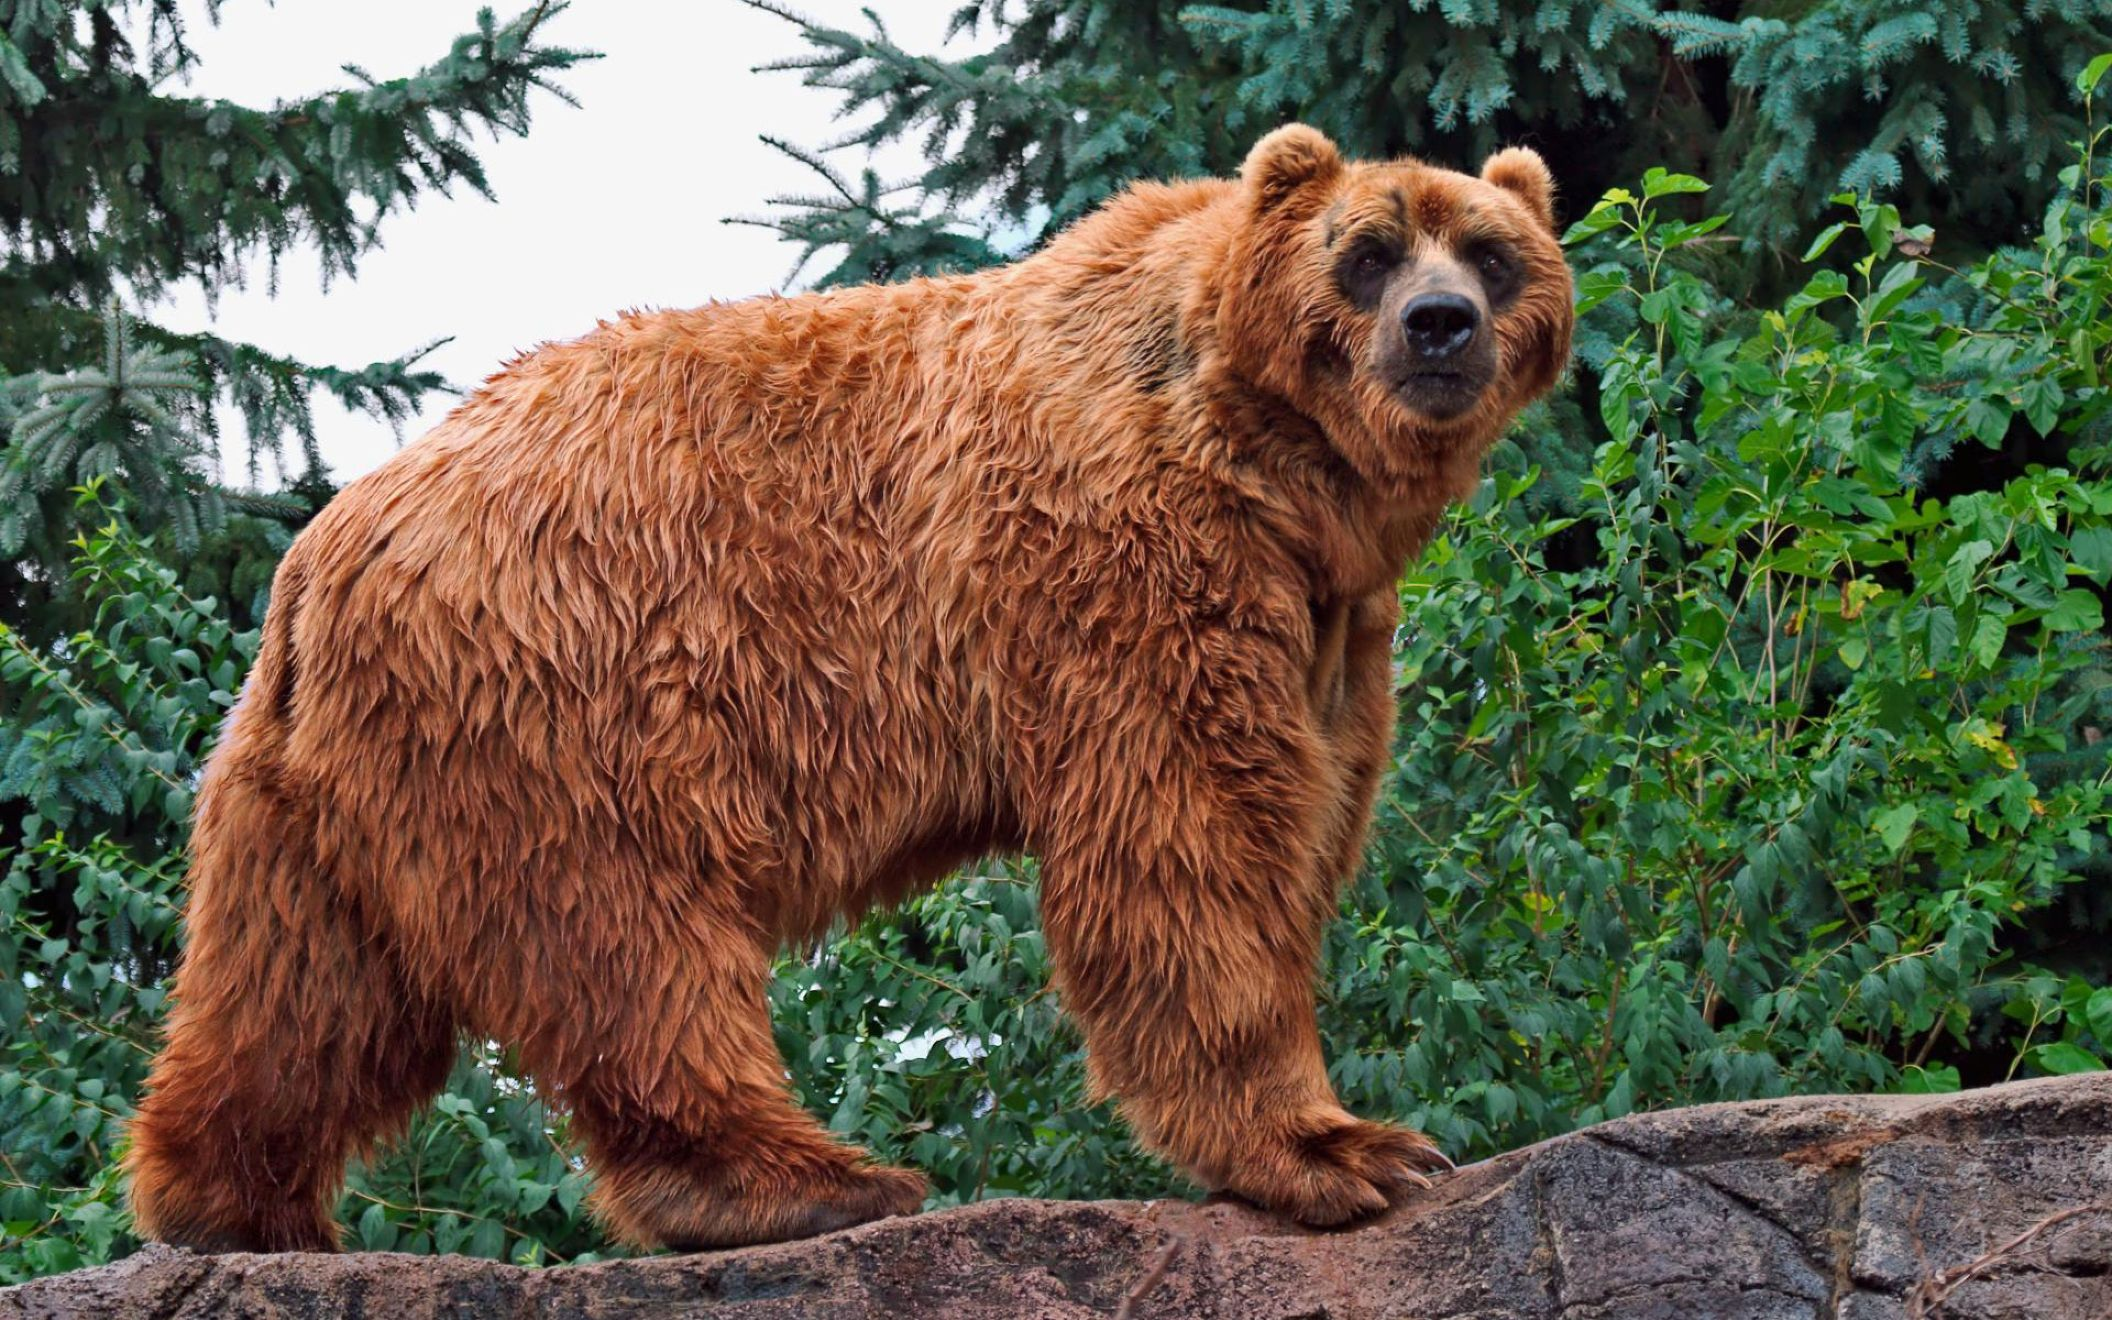 Download free HD Kodiak Bear Wide Wallpaper, image